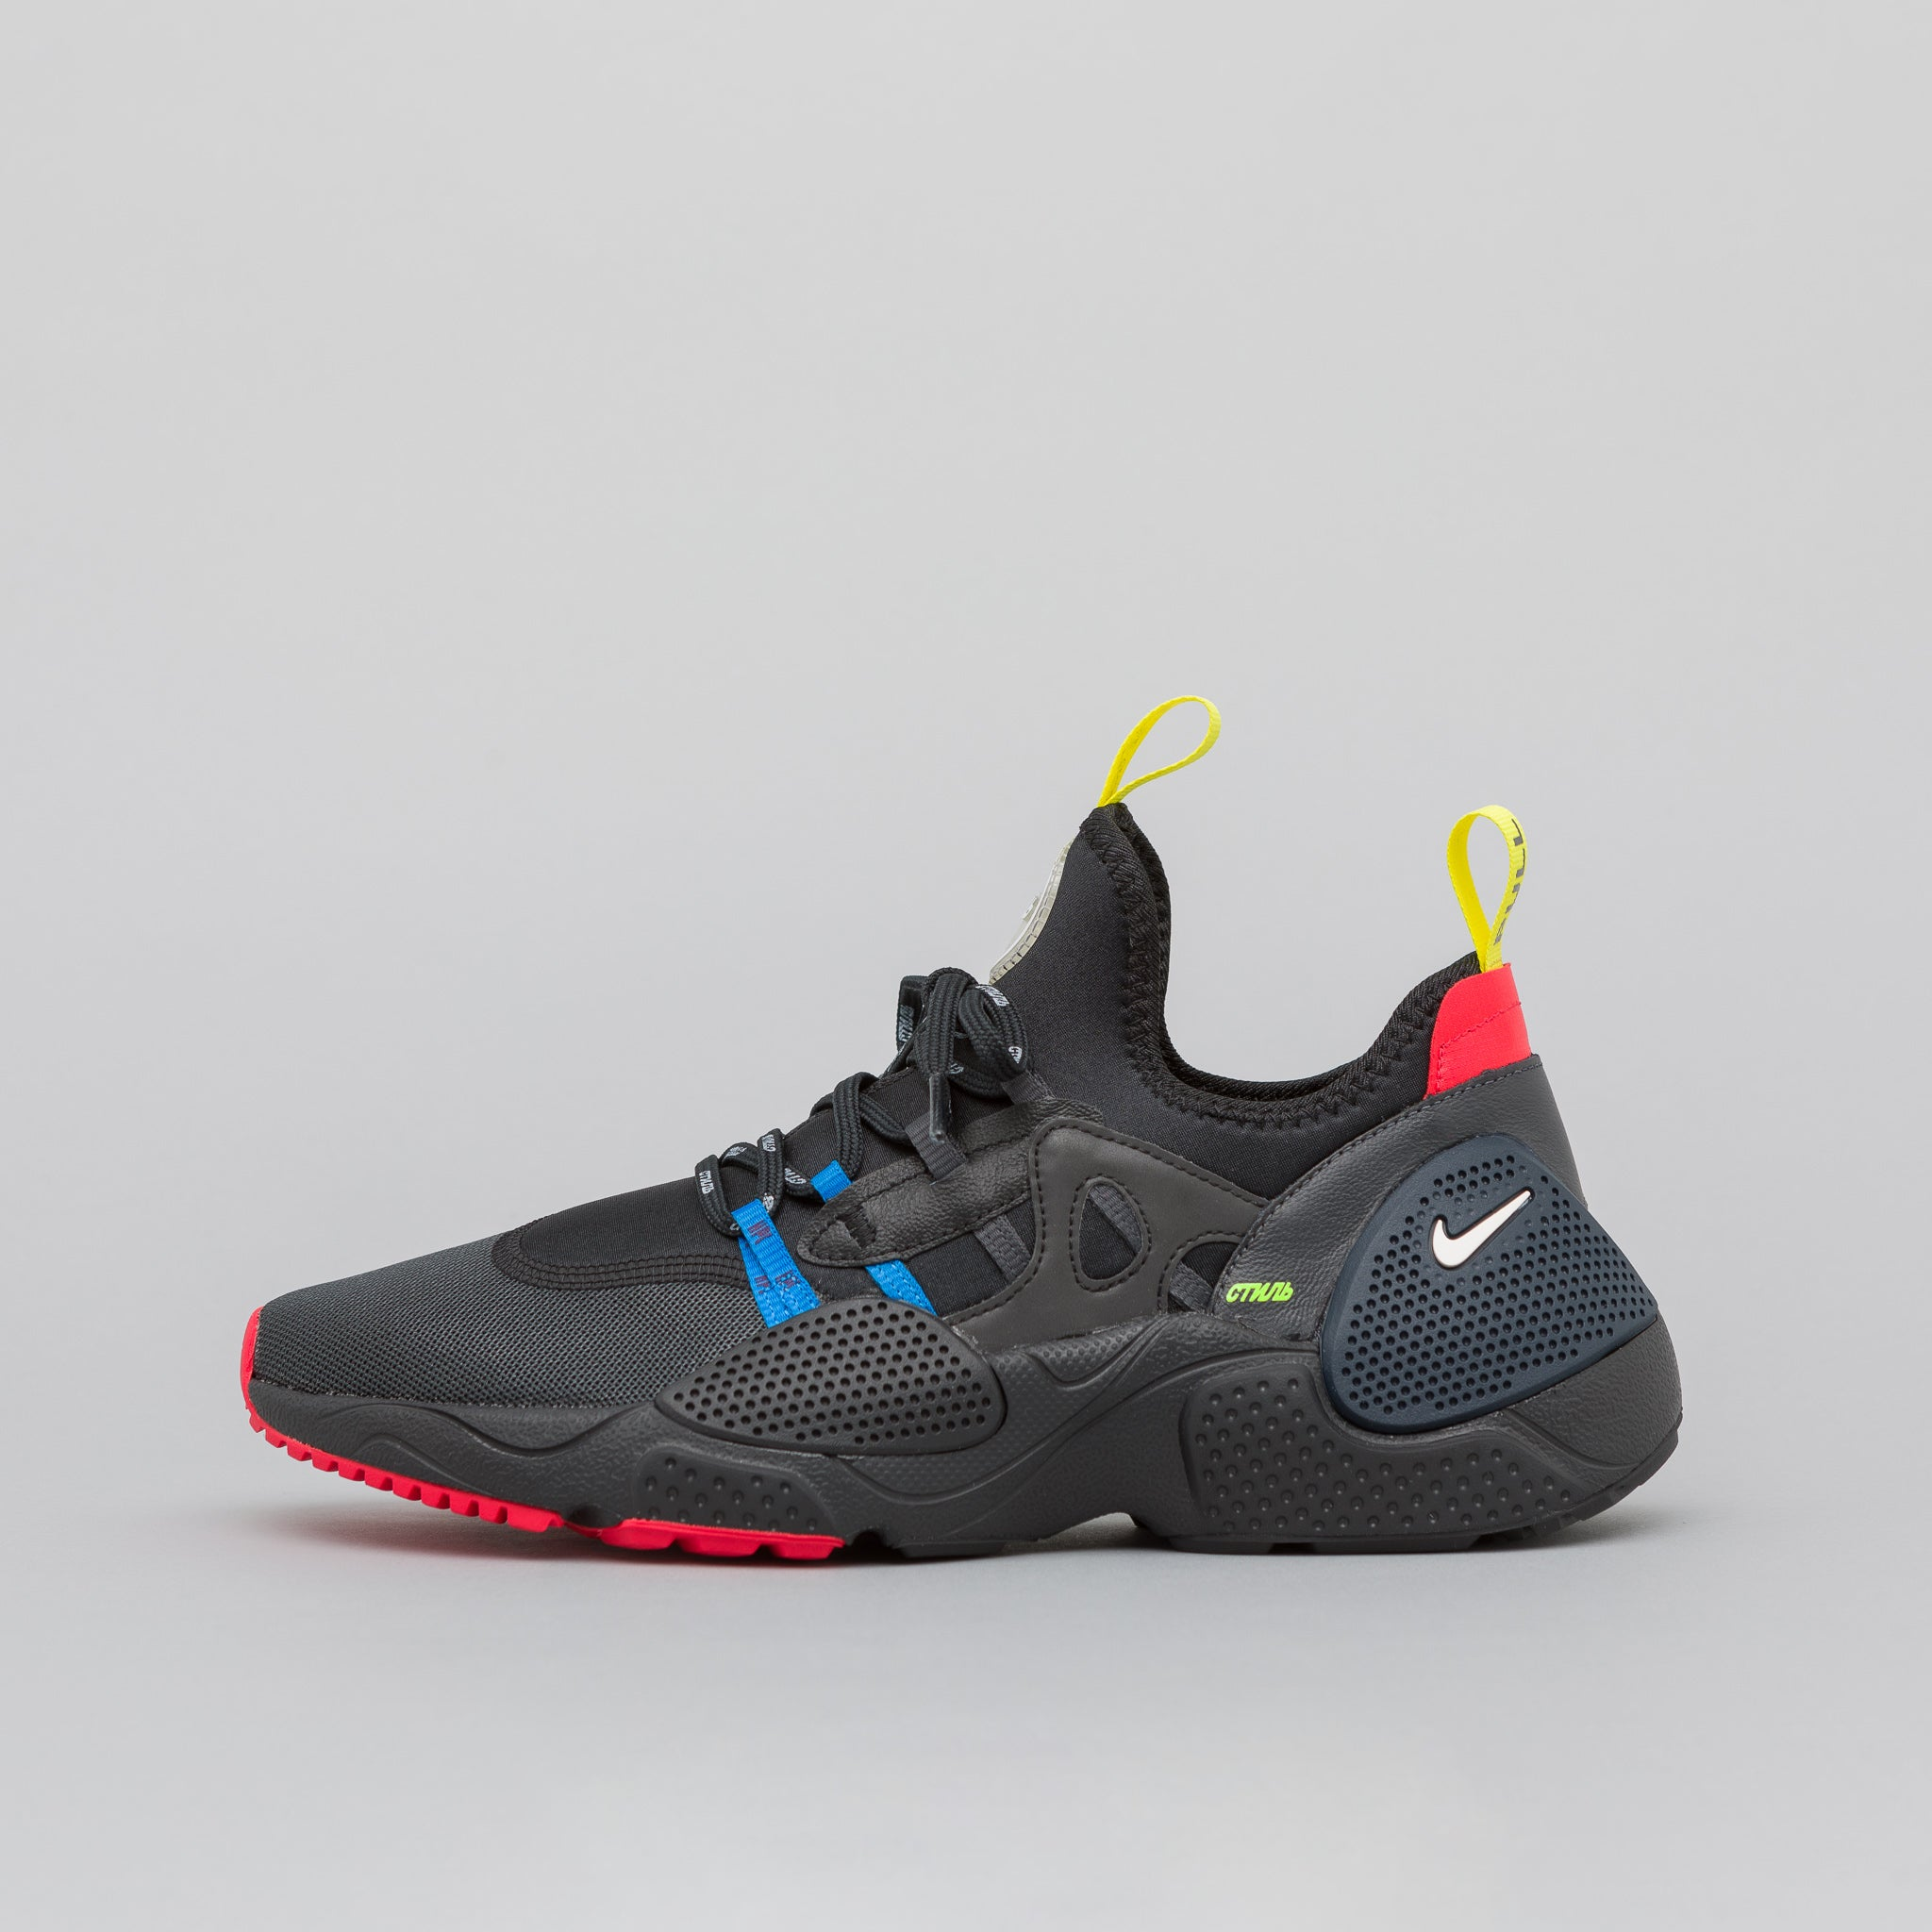 uk availability 61d6f b9035 x Heron Preston Huarache E.D.G.E. in Black